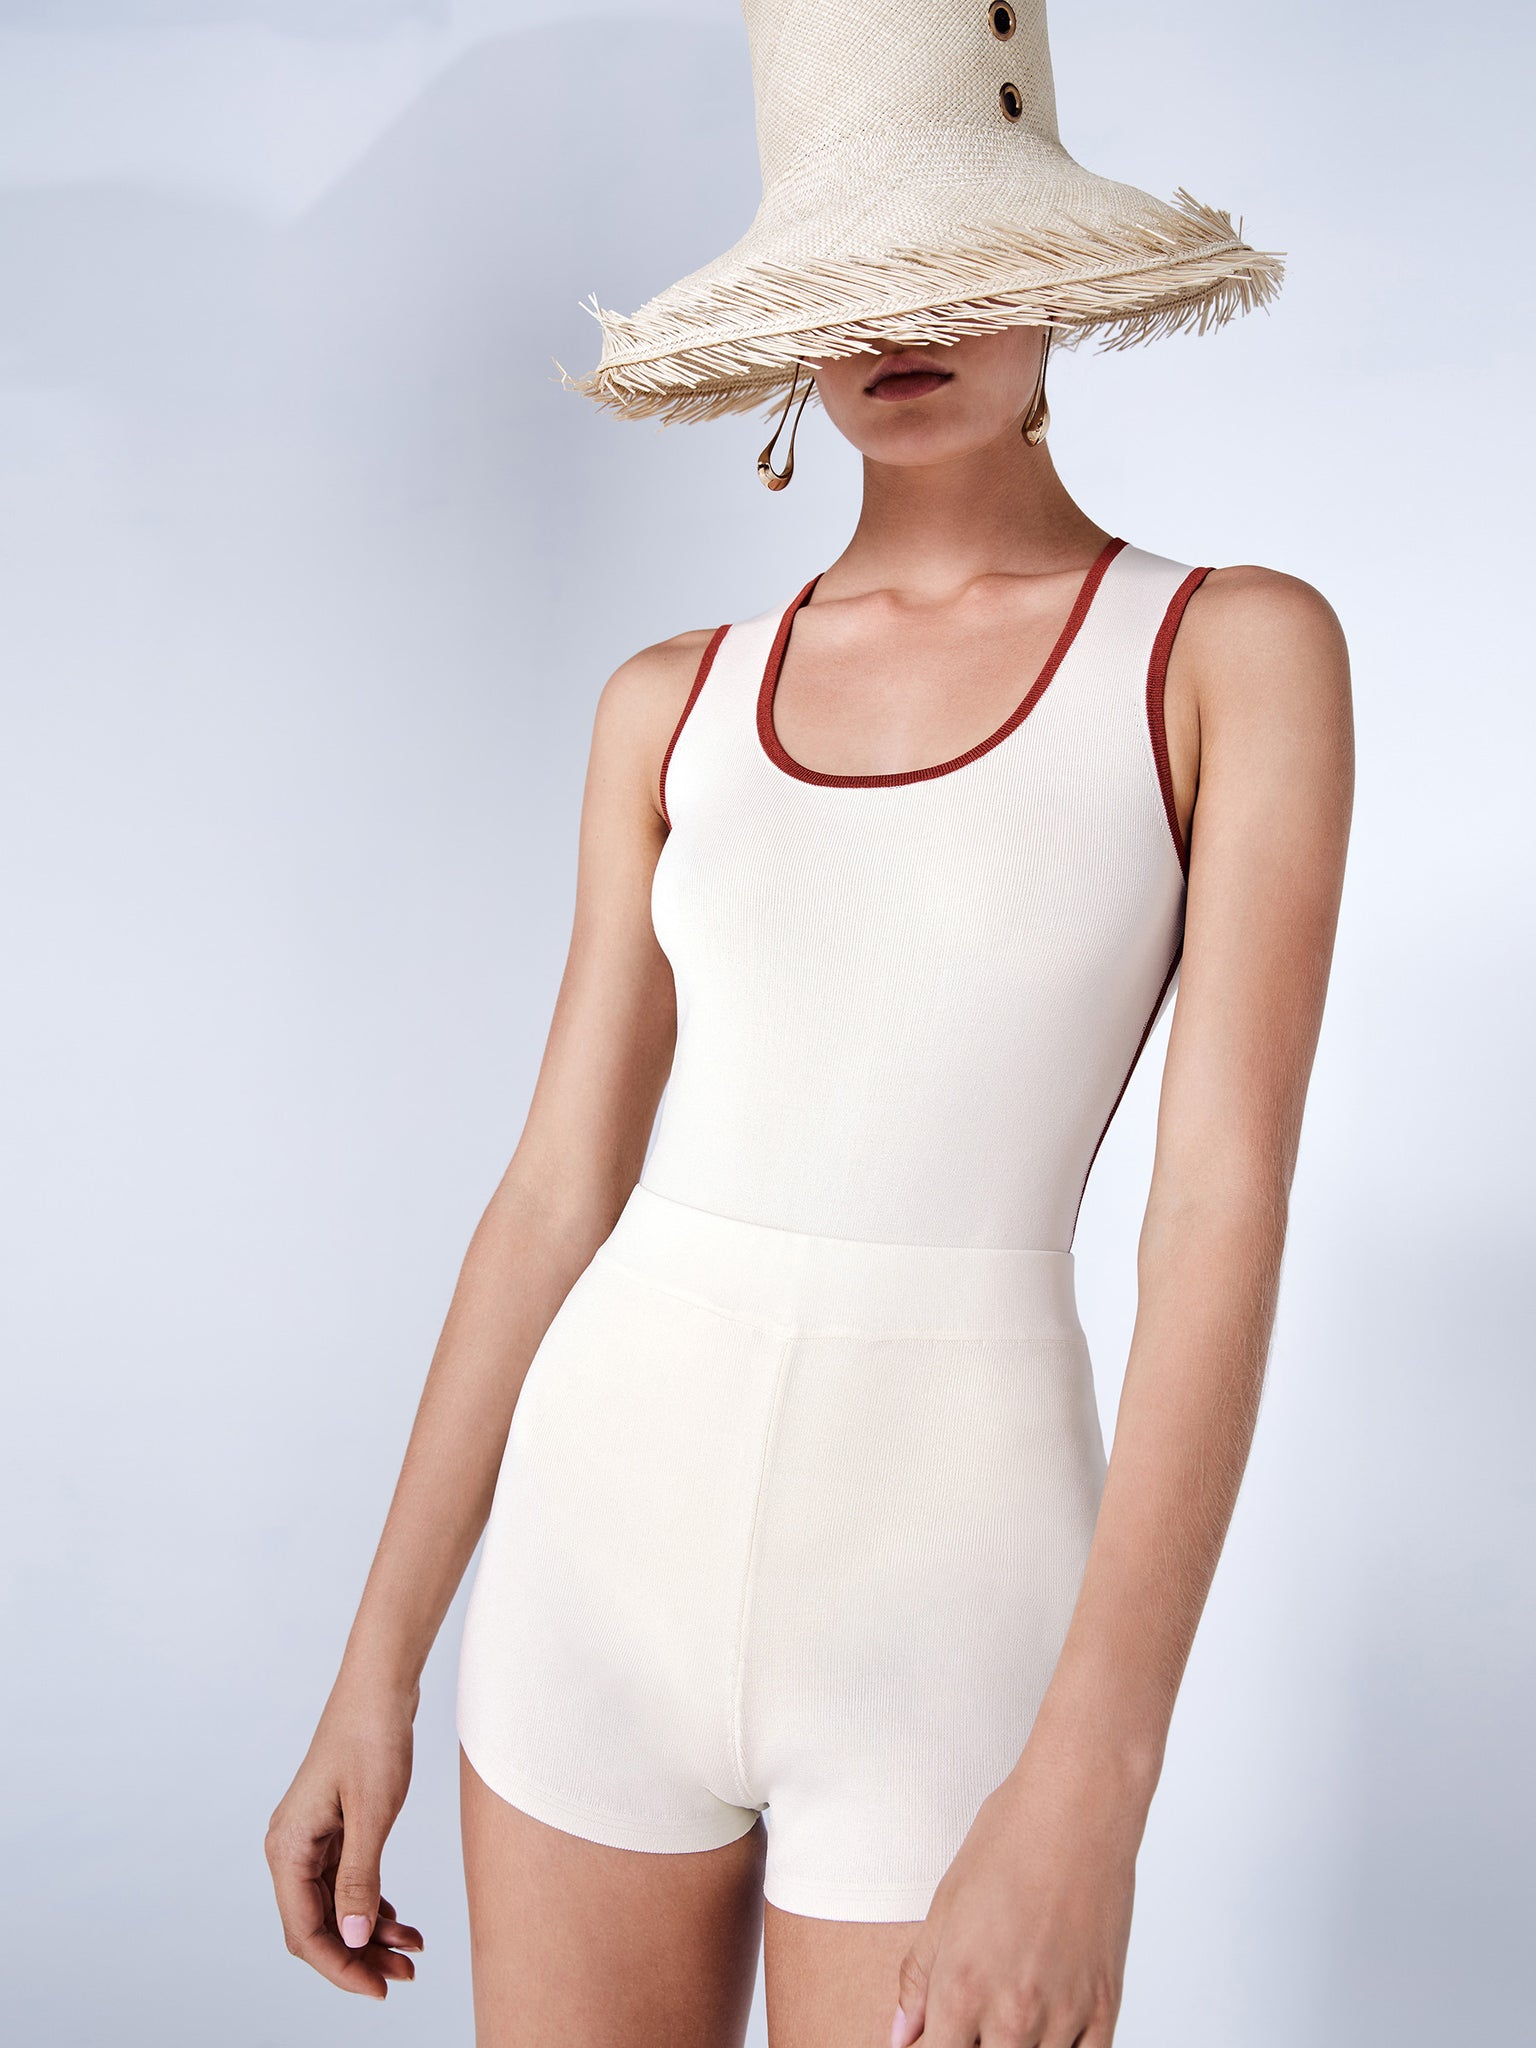 Alexis panya bodysuit in white with redpiping - Rear View